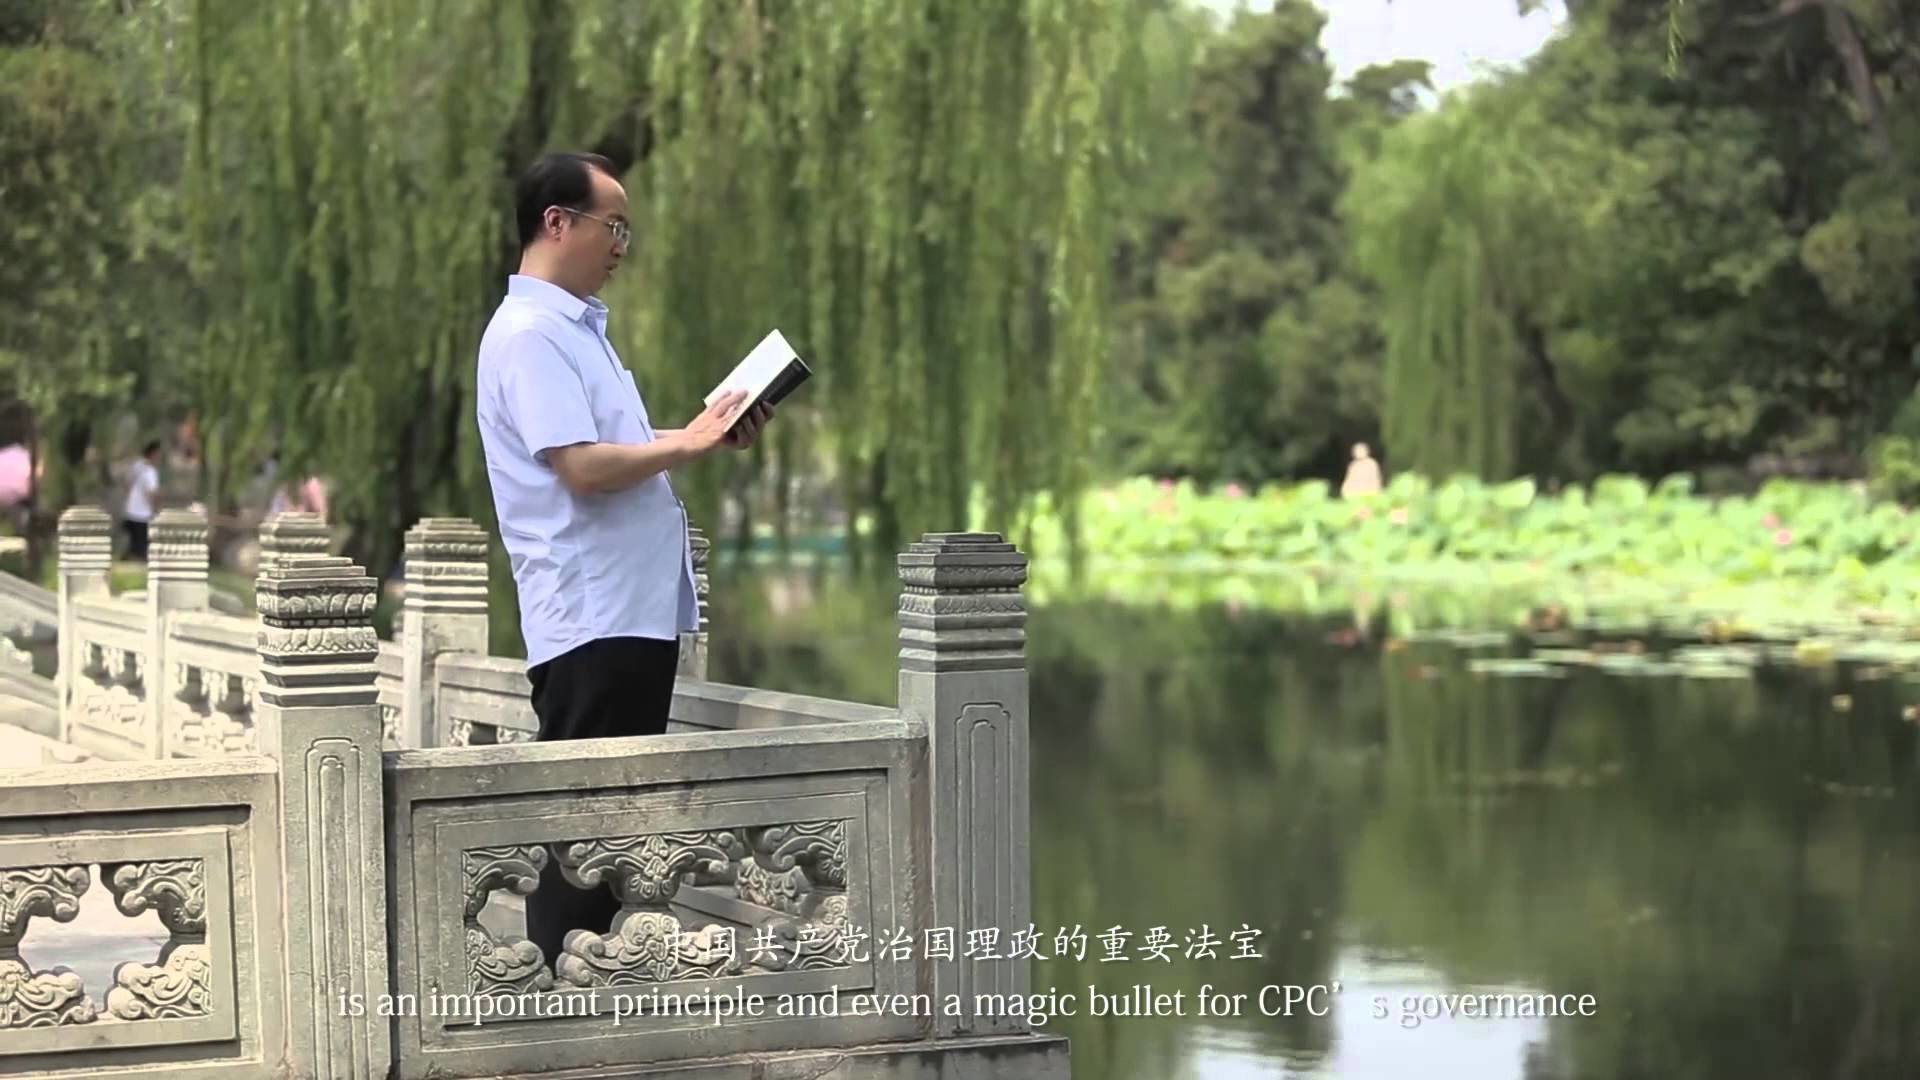 Res: 1920x1080, Introduction to Mao Zedong Thought 毛泽东思想概论 | TsinghuaX on edX | Course  About Video